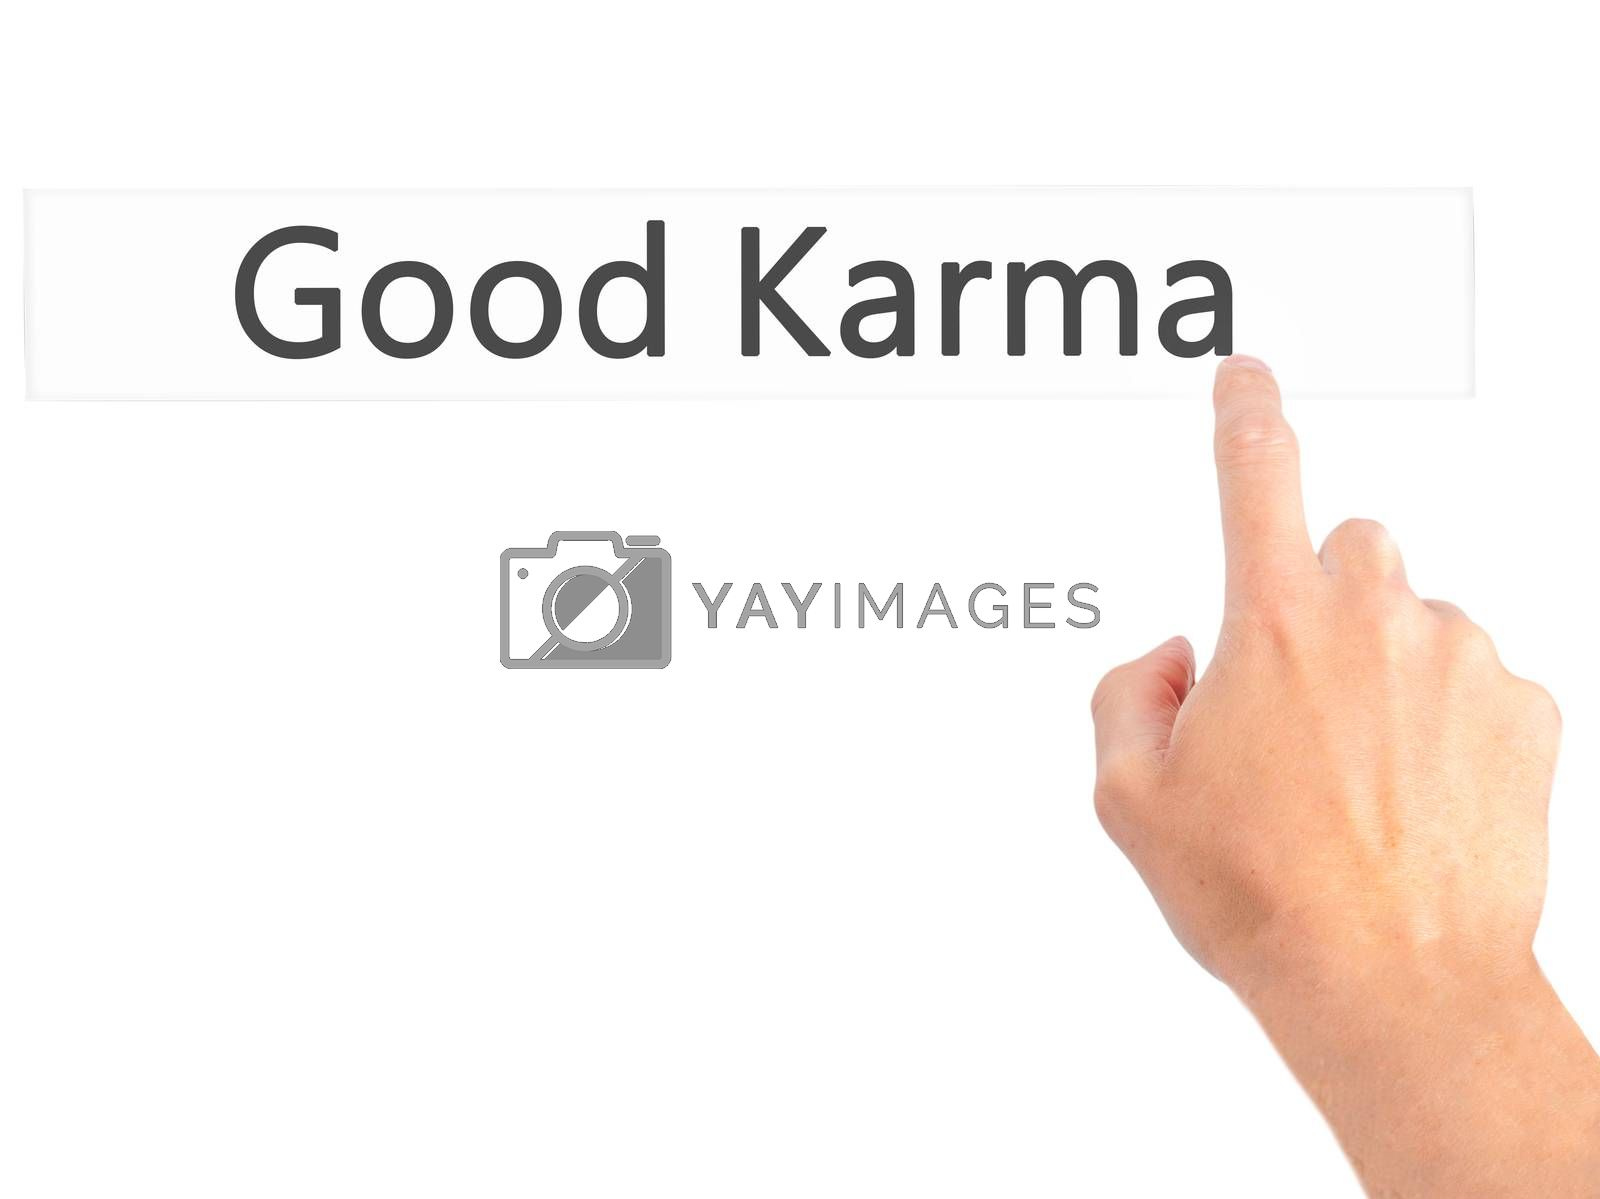 Good Karma - Hand pressing a button on blurred background concep by jackald